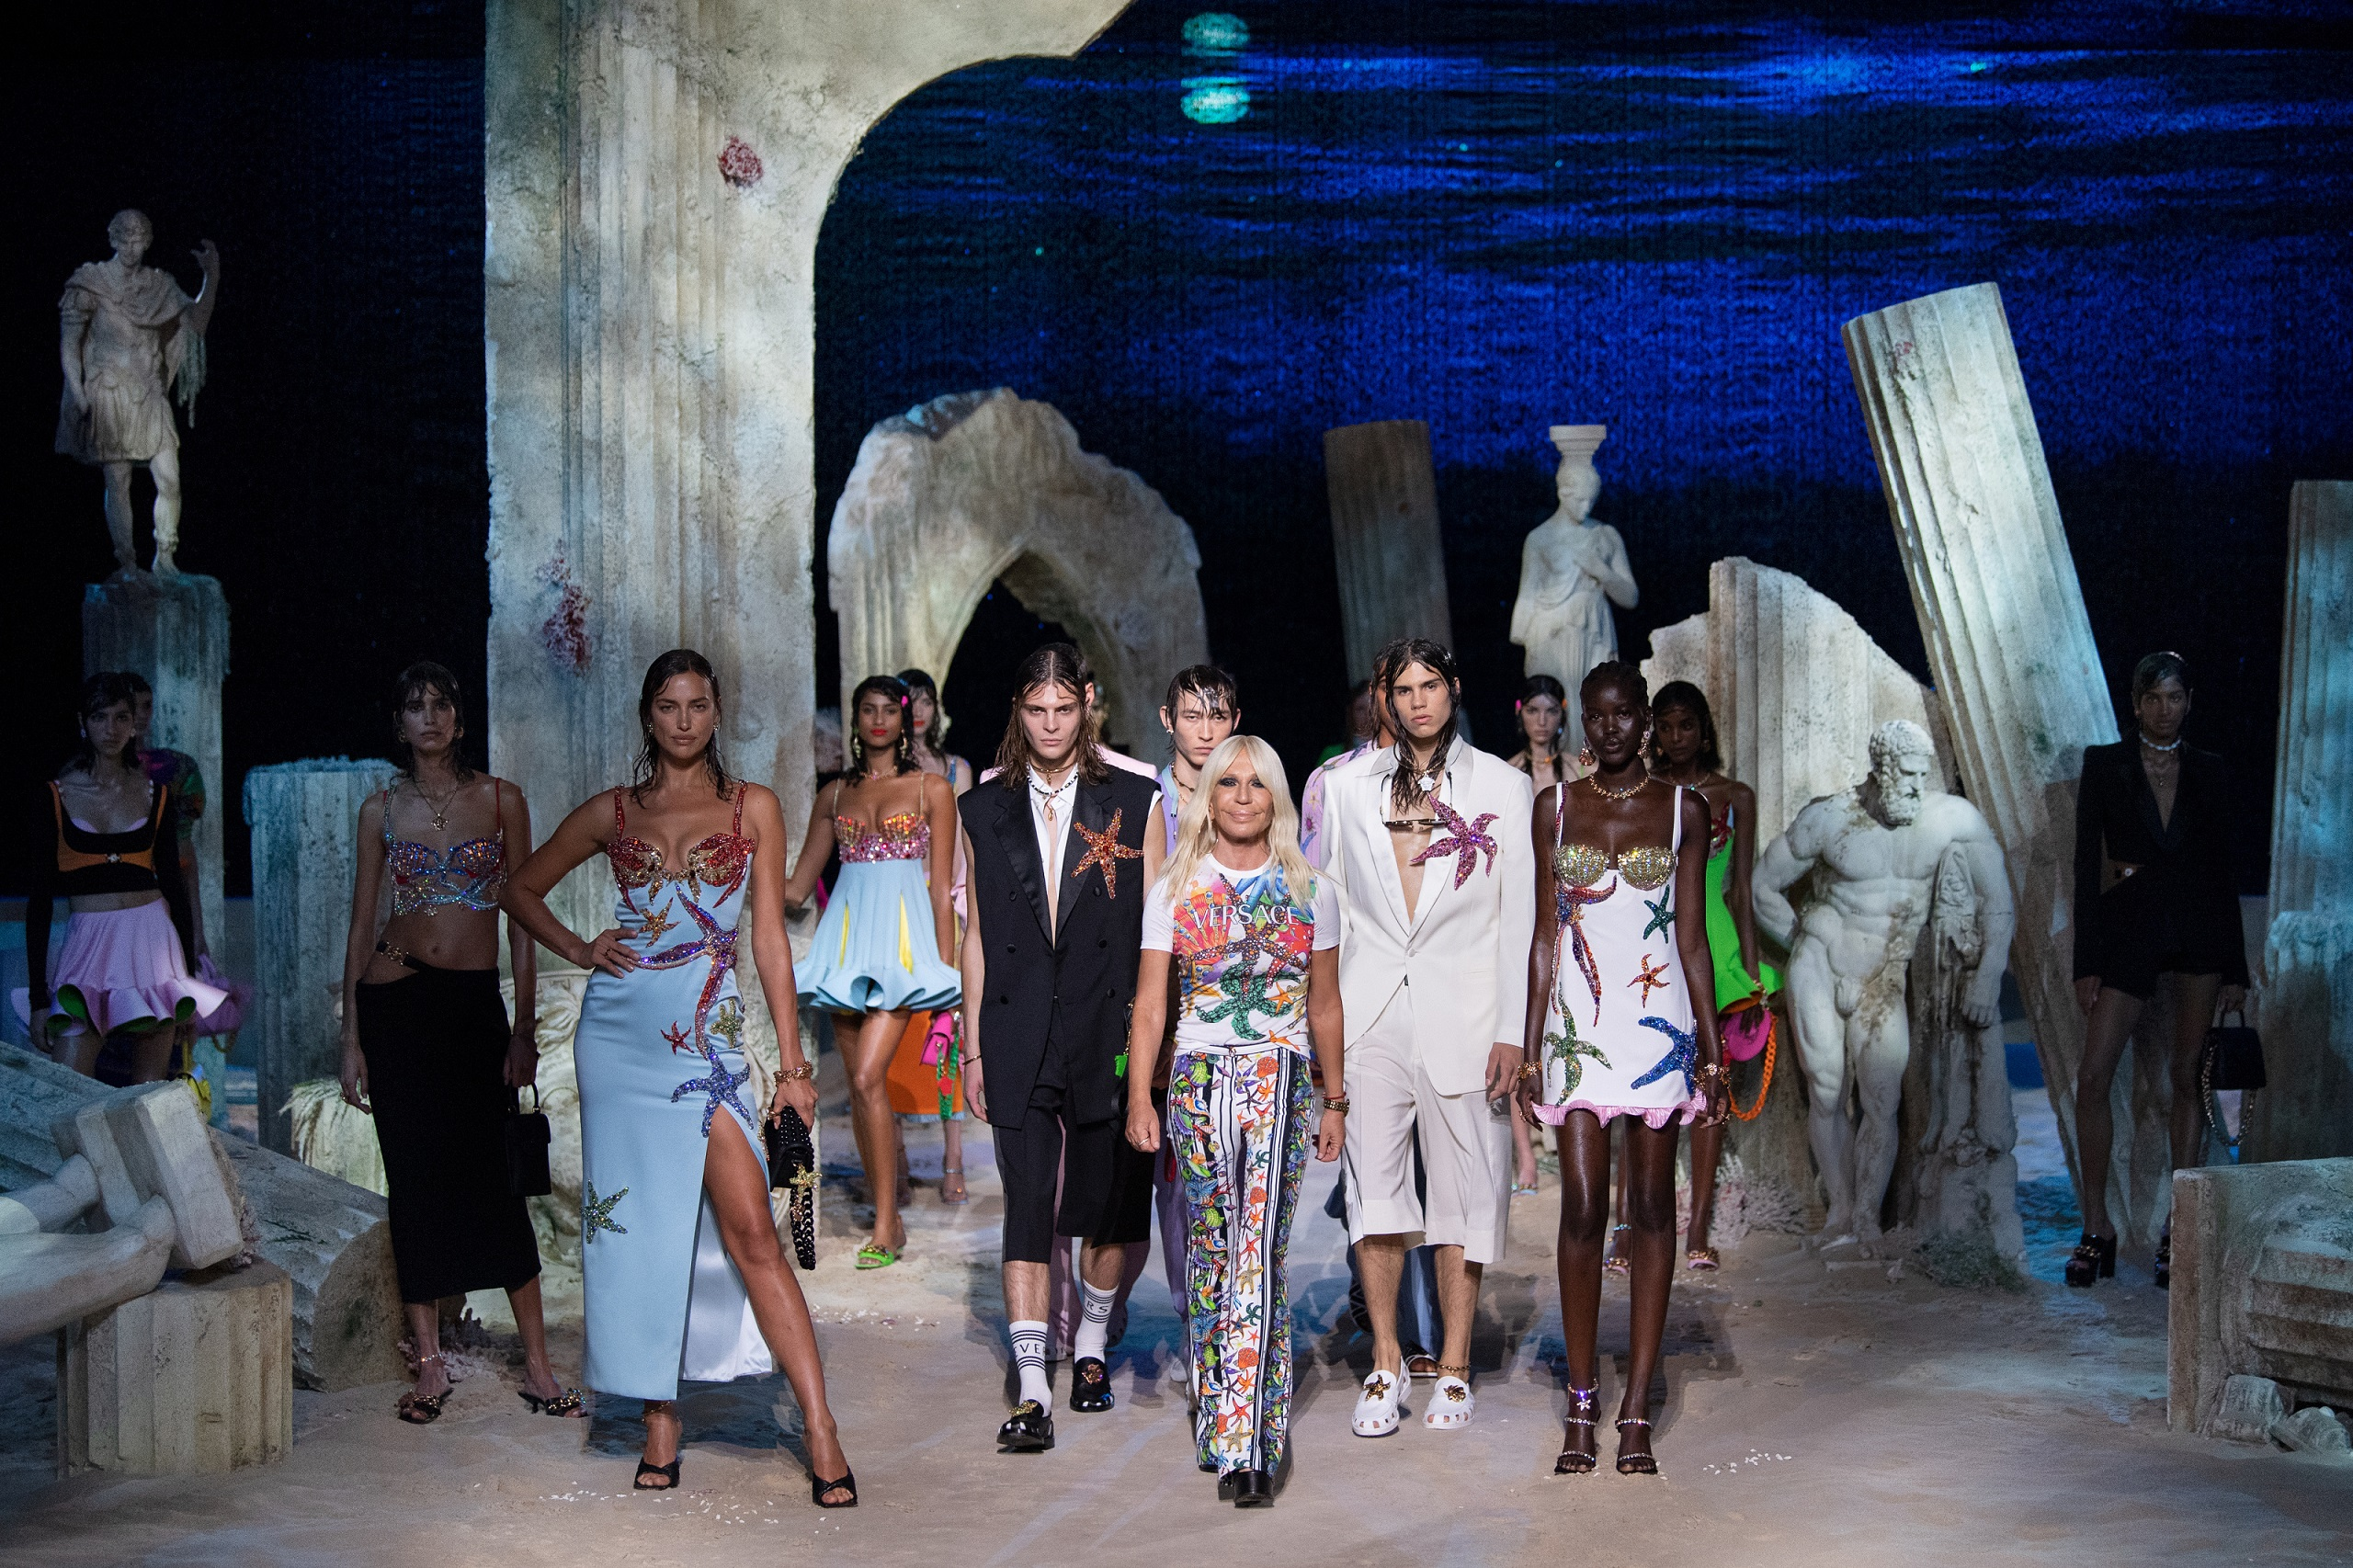 Donatella Versace posing with models on the set of the Versace spring 2021 runway show